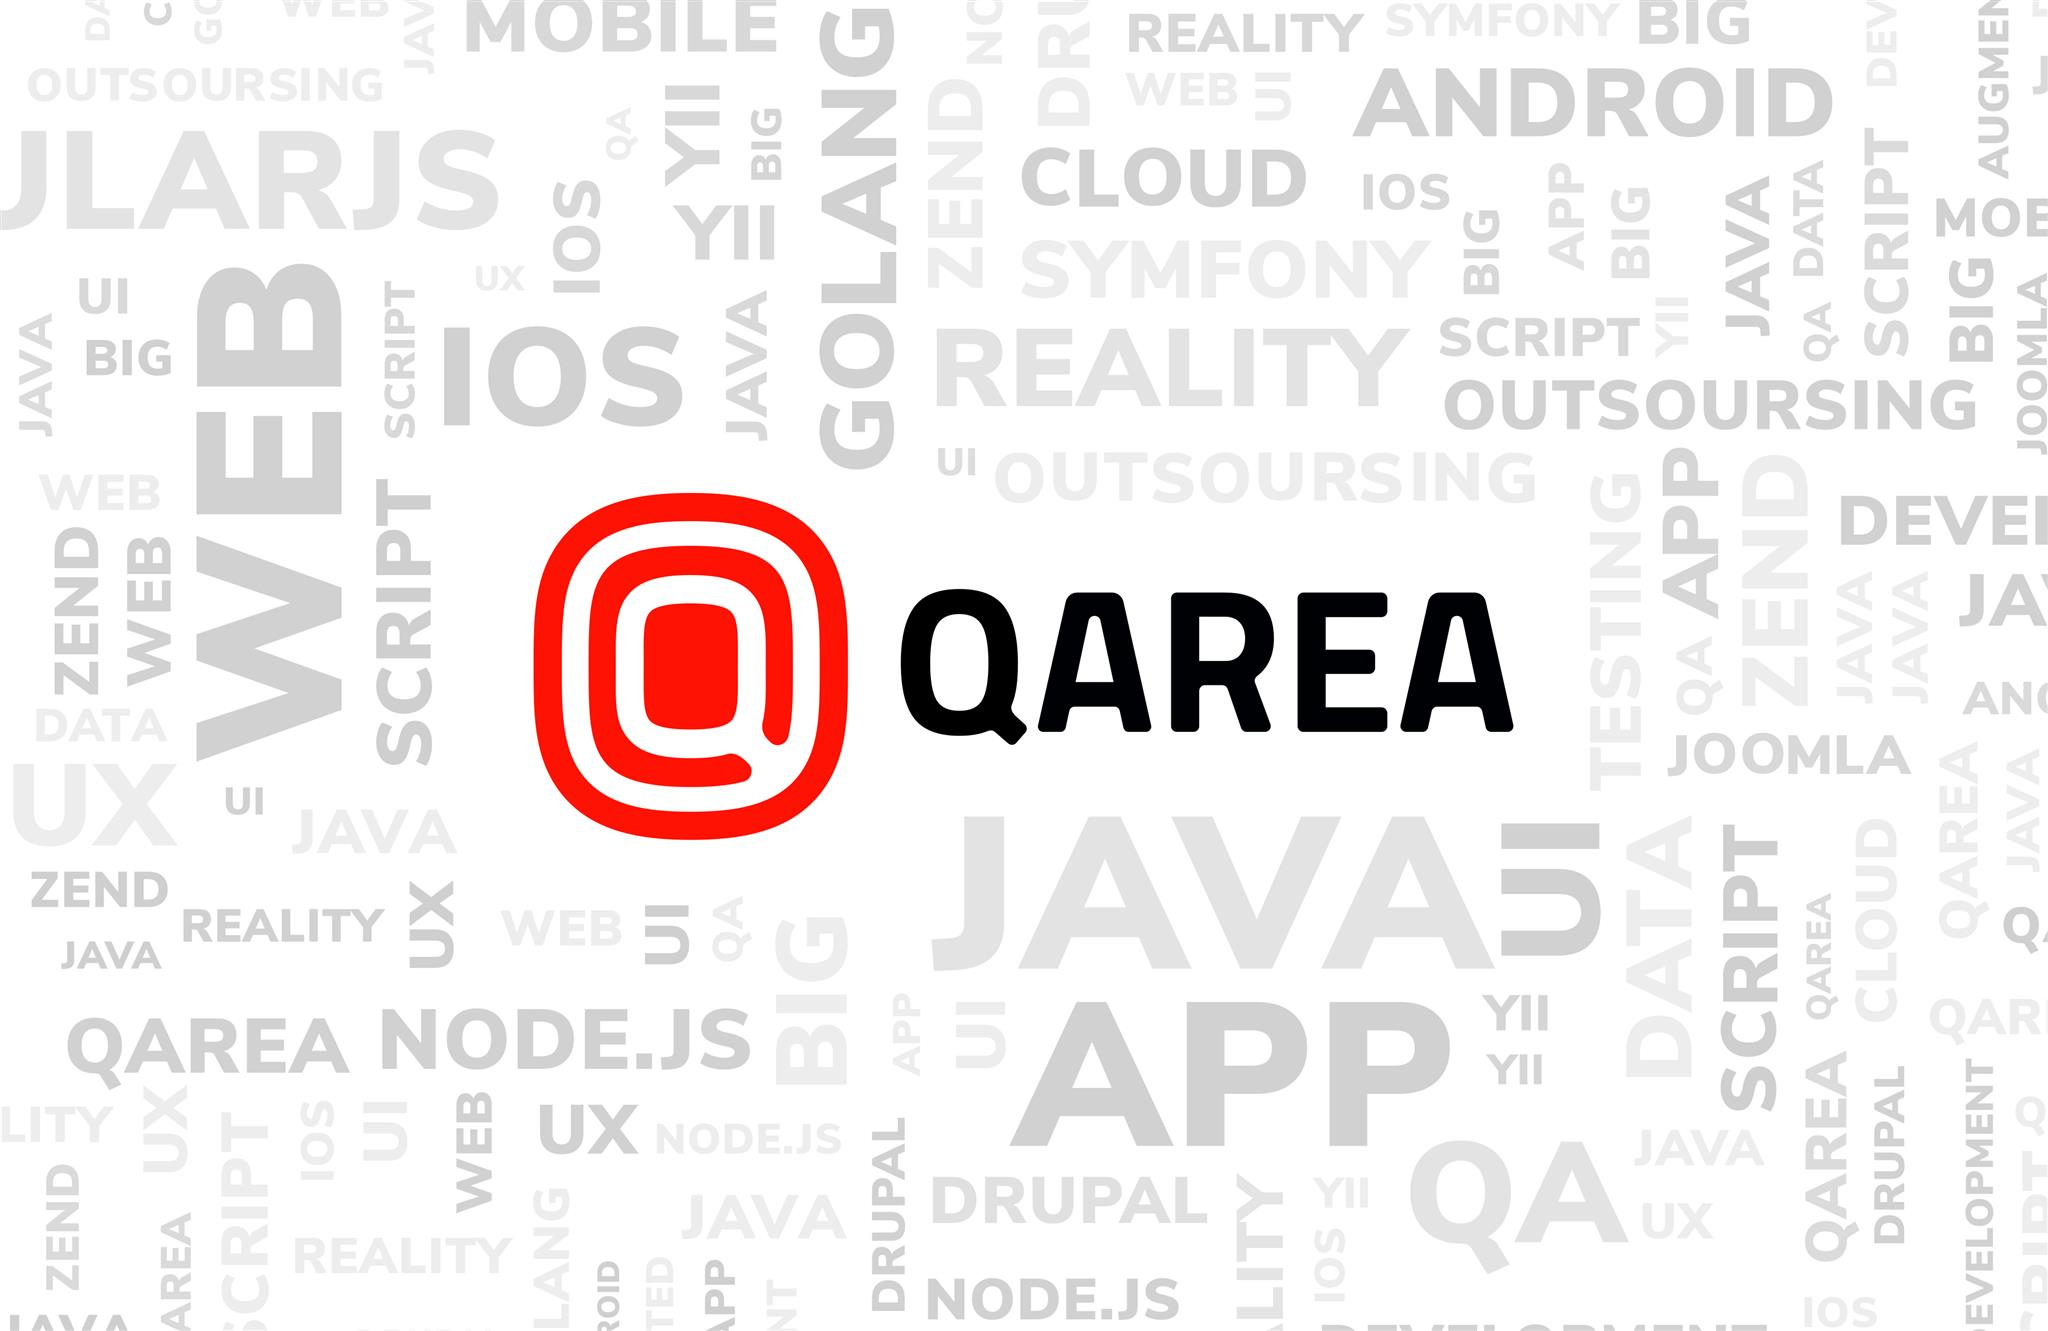 QArea joined the Drupal Association